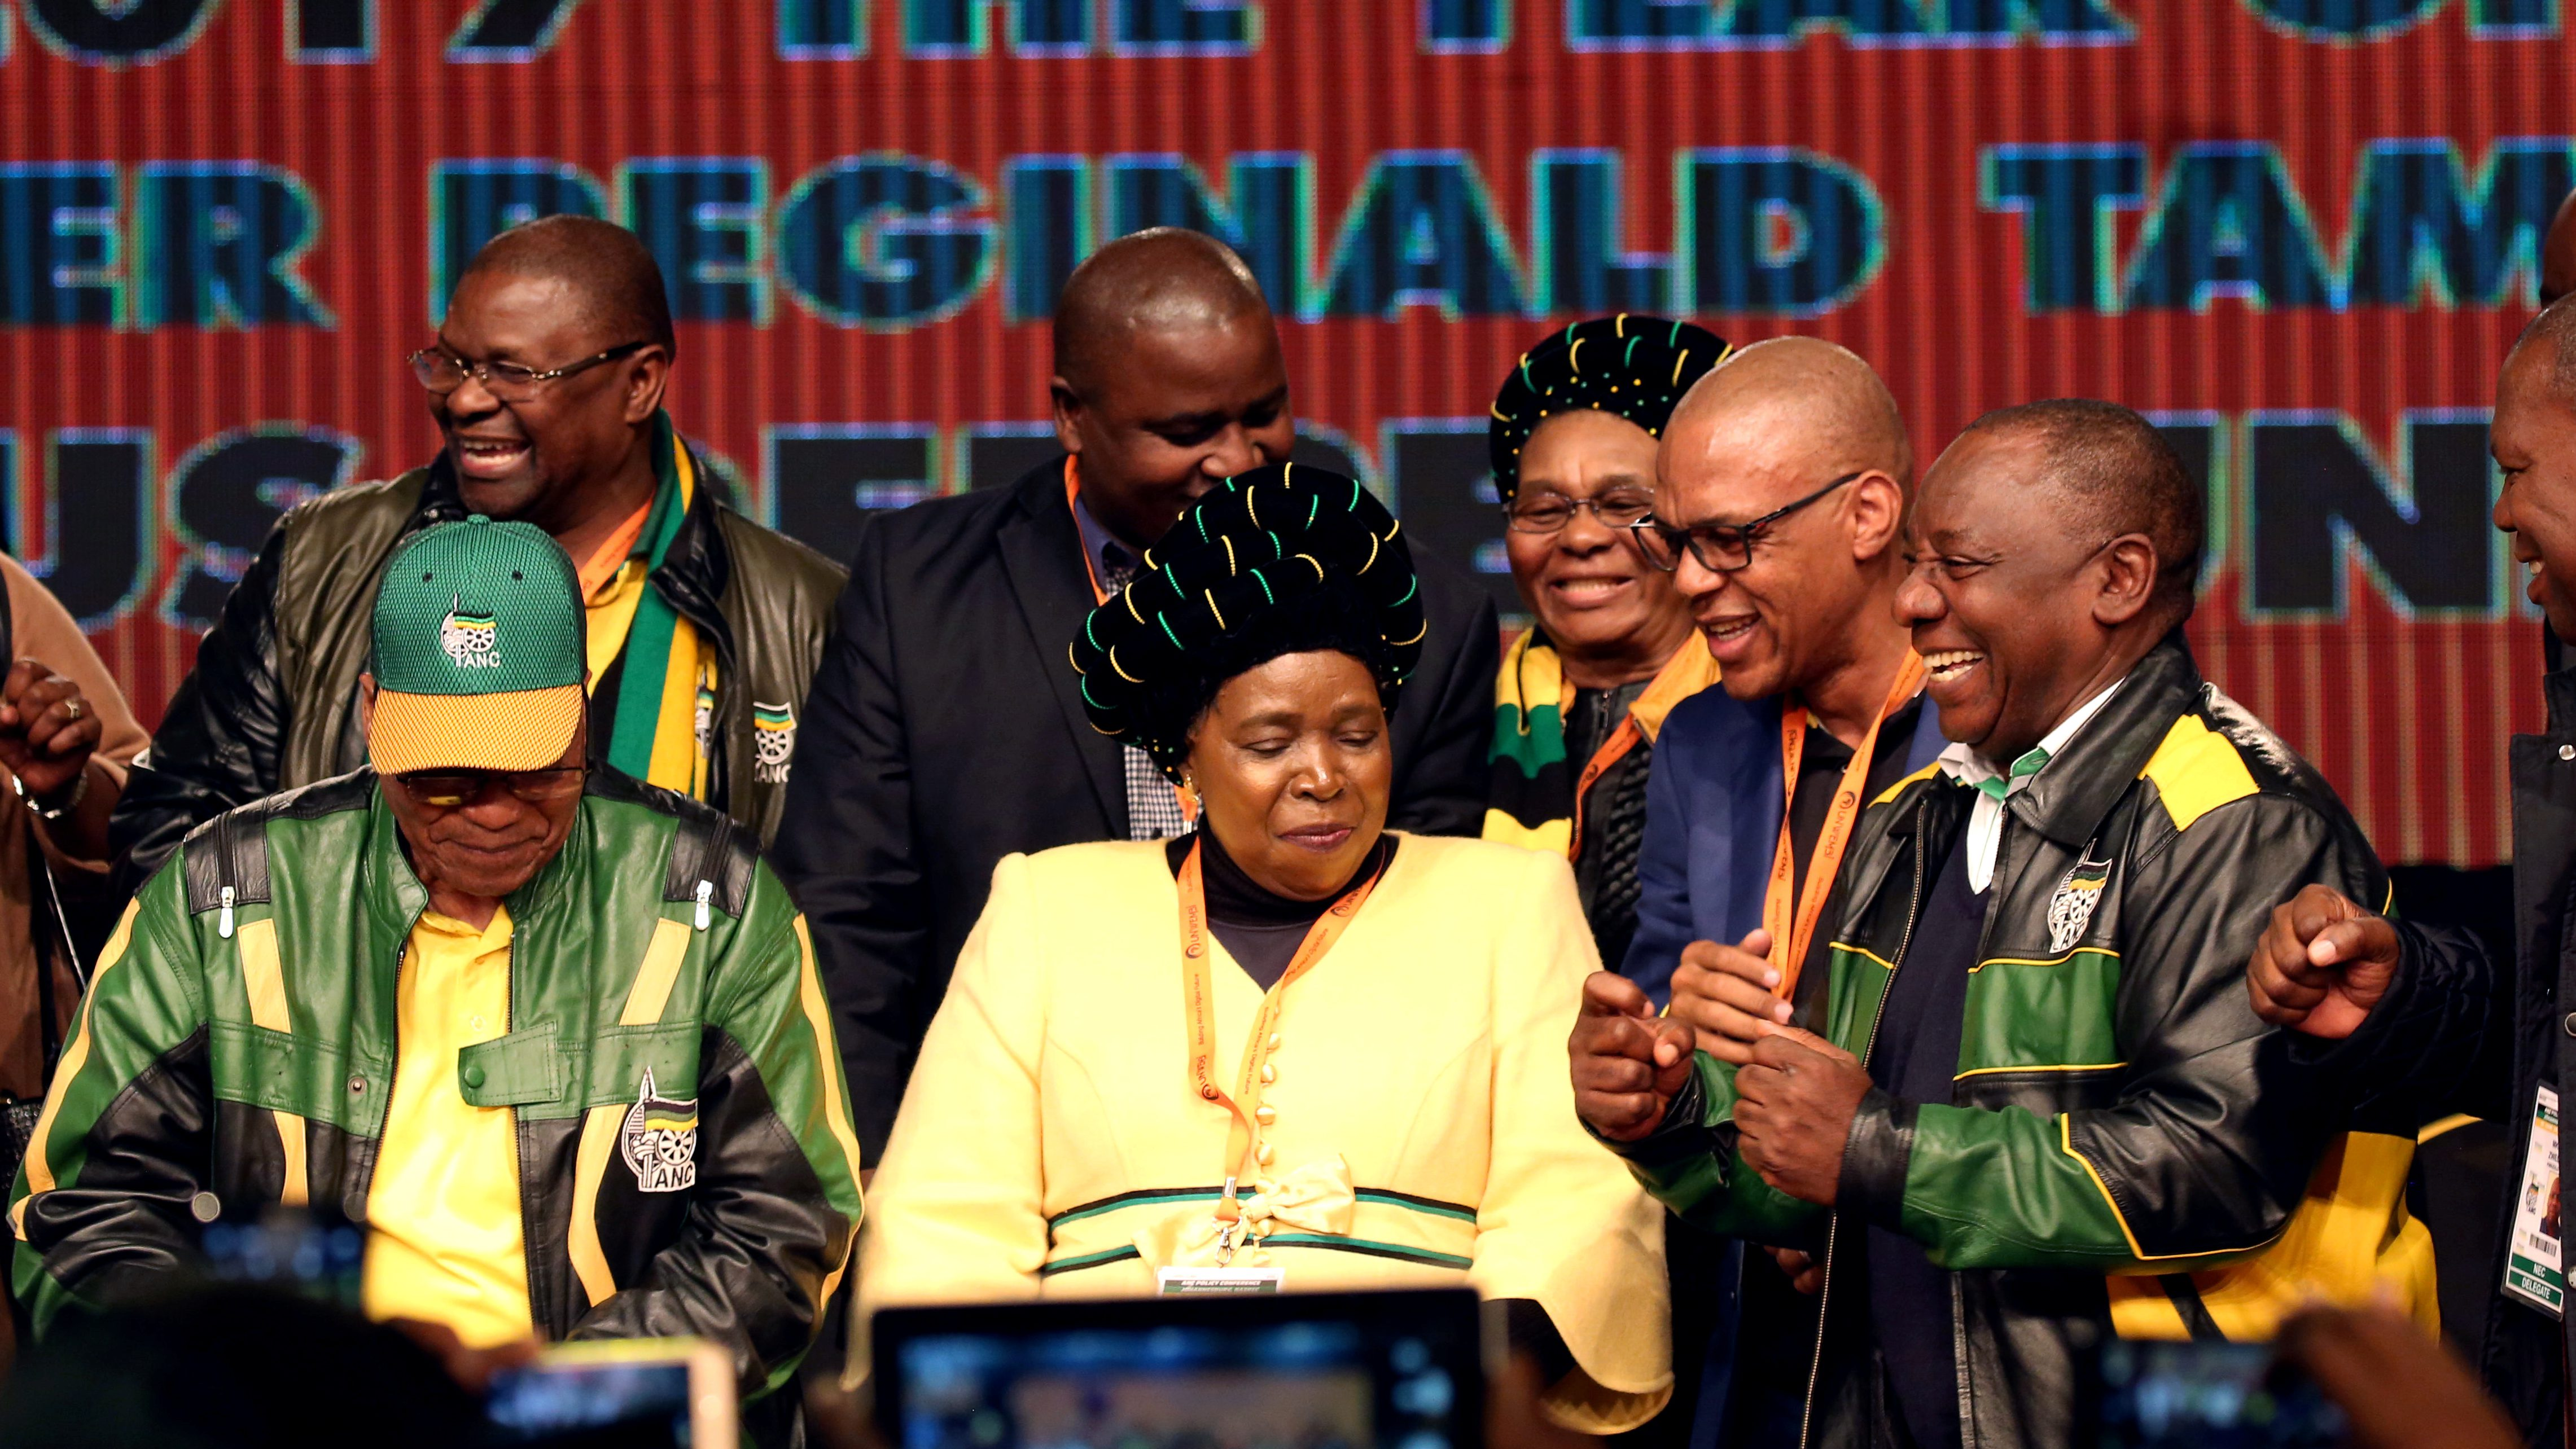 South Africa's President Jacob Zuma dances with former African Union chairperson Nkosazana Dlamini-Zuma and South Africa's Deputy President Cyril Ramaphosa during the last day of the six-day meeting of the African National Congress 5th National Policy Conference at the Nasrec Expo Centre in Soweto, South Africa, July 5, 2017.